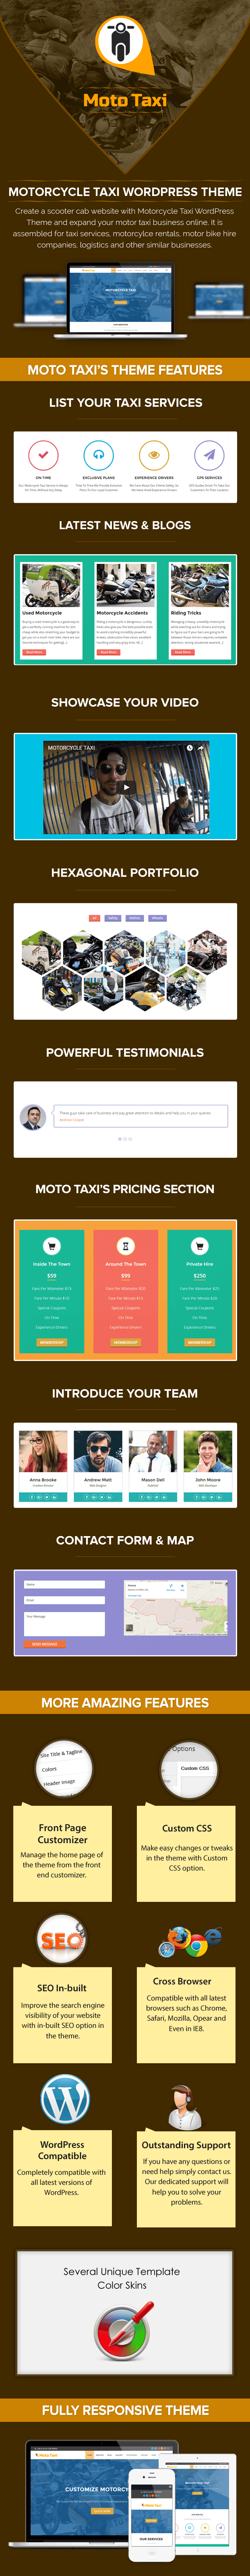 Motorcycle Taxi WP Theme